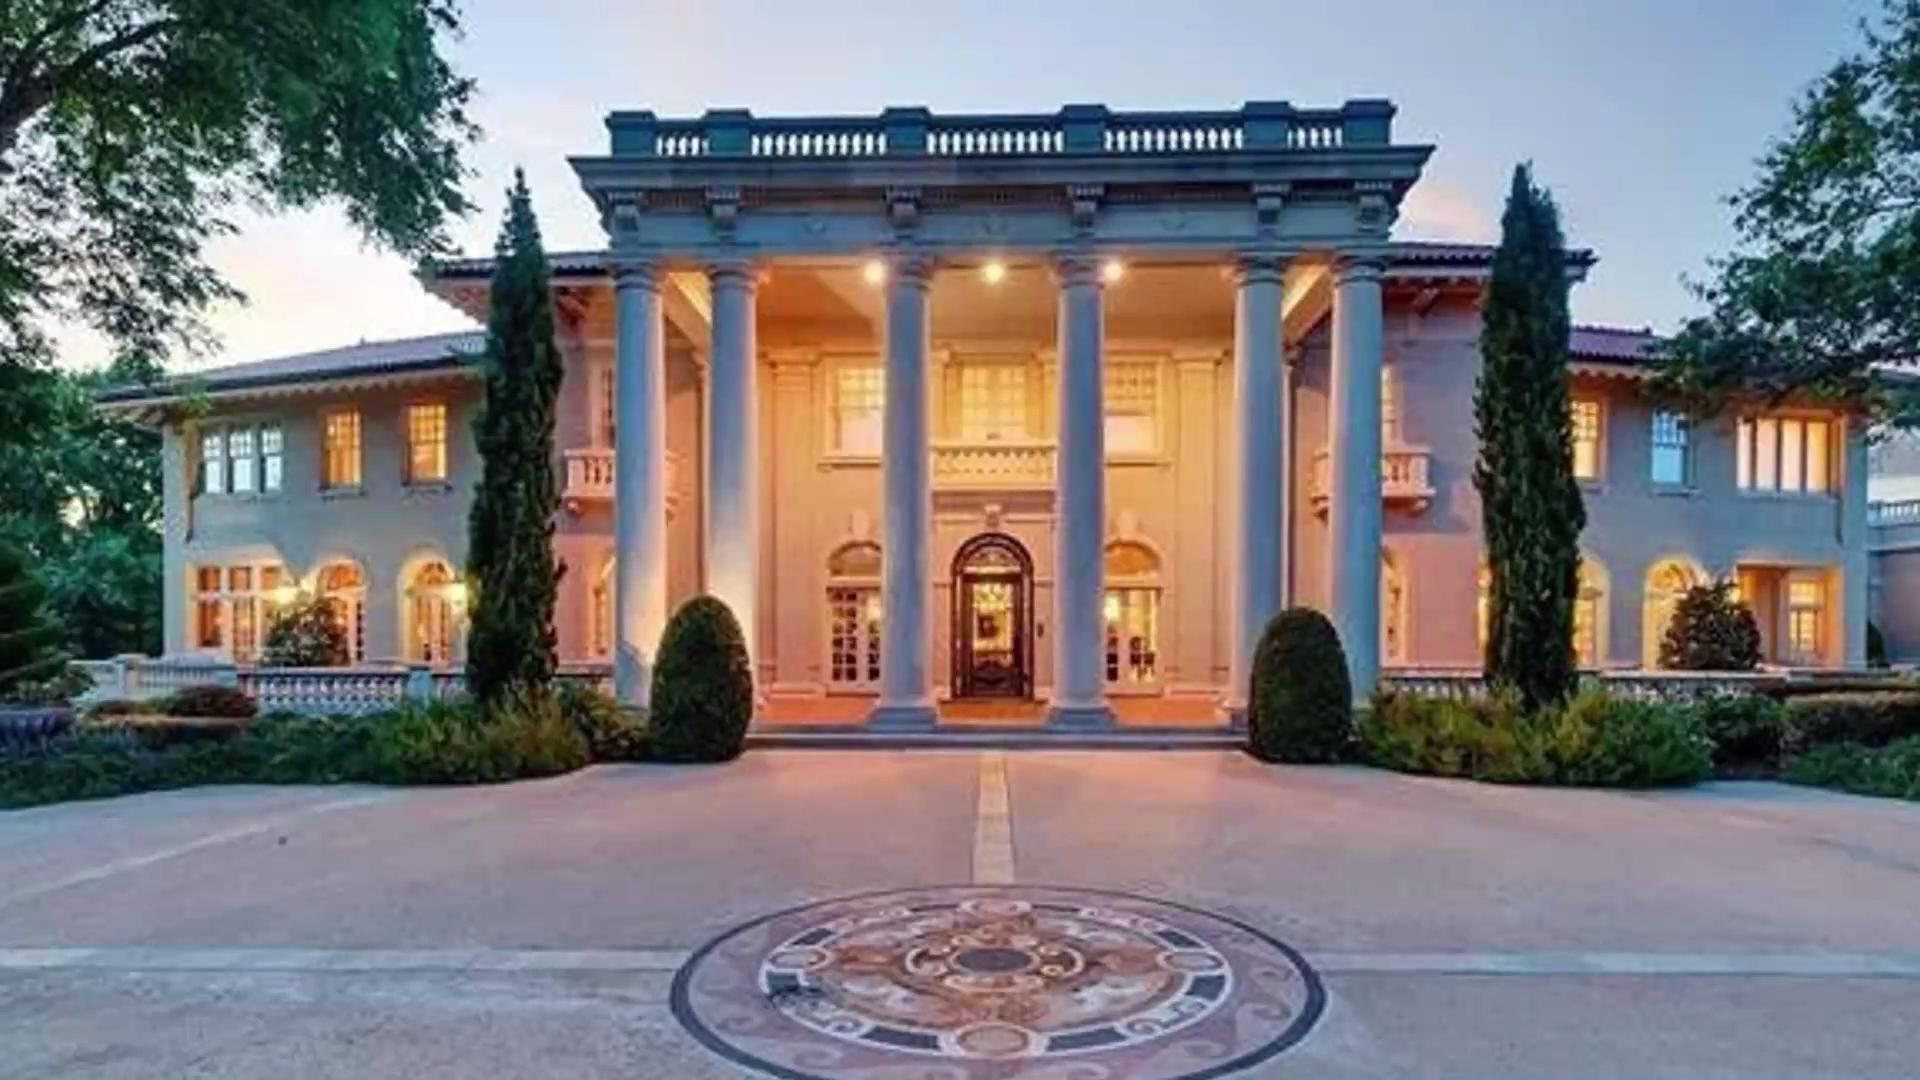 Peek Inside This Opulent Mansion